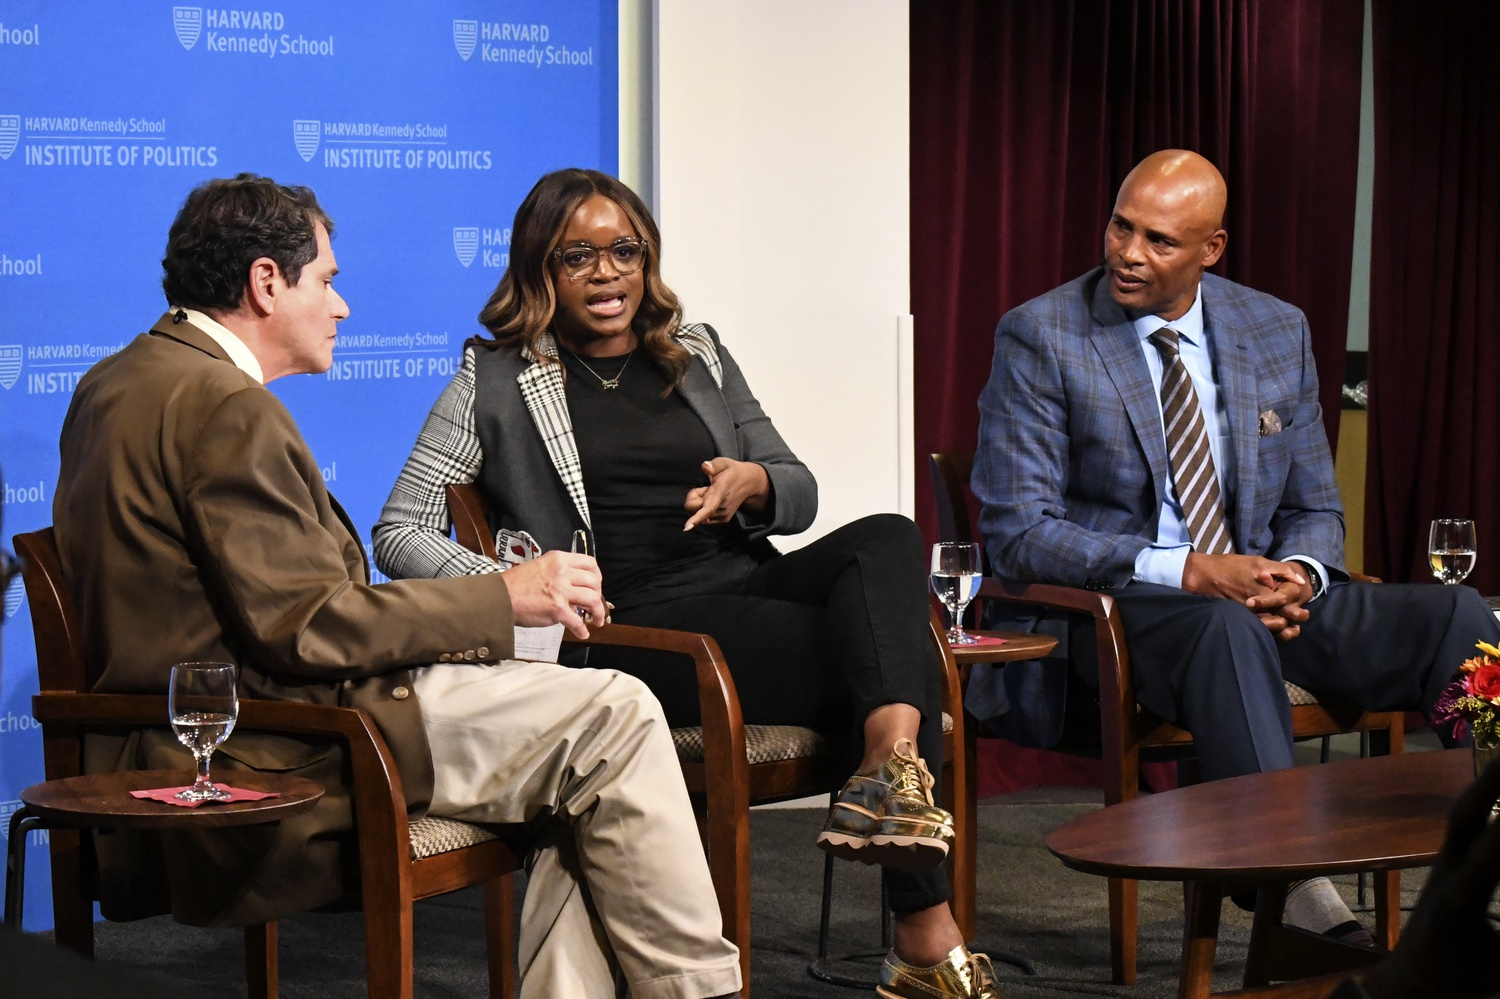 Former IOP fellow Brittany Packett, and former NBA player Clark Kellogg discuss the power of sports and the positive influence athletes can have on their community at an Institute of Politics event Tuesday night.